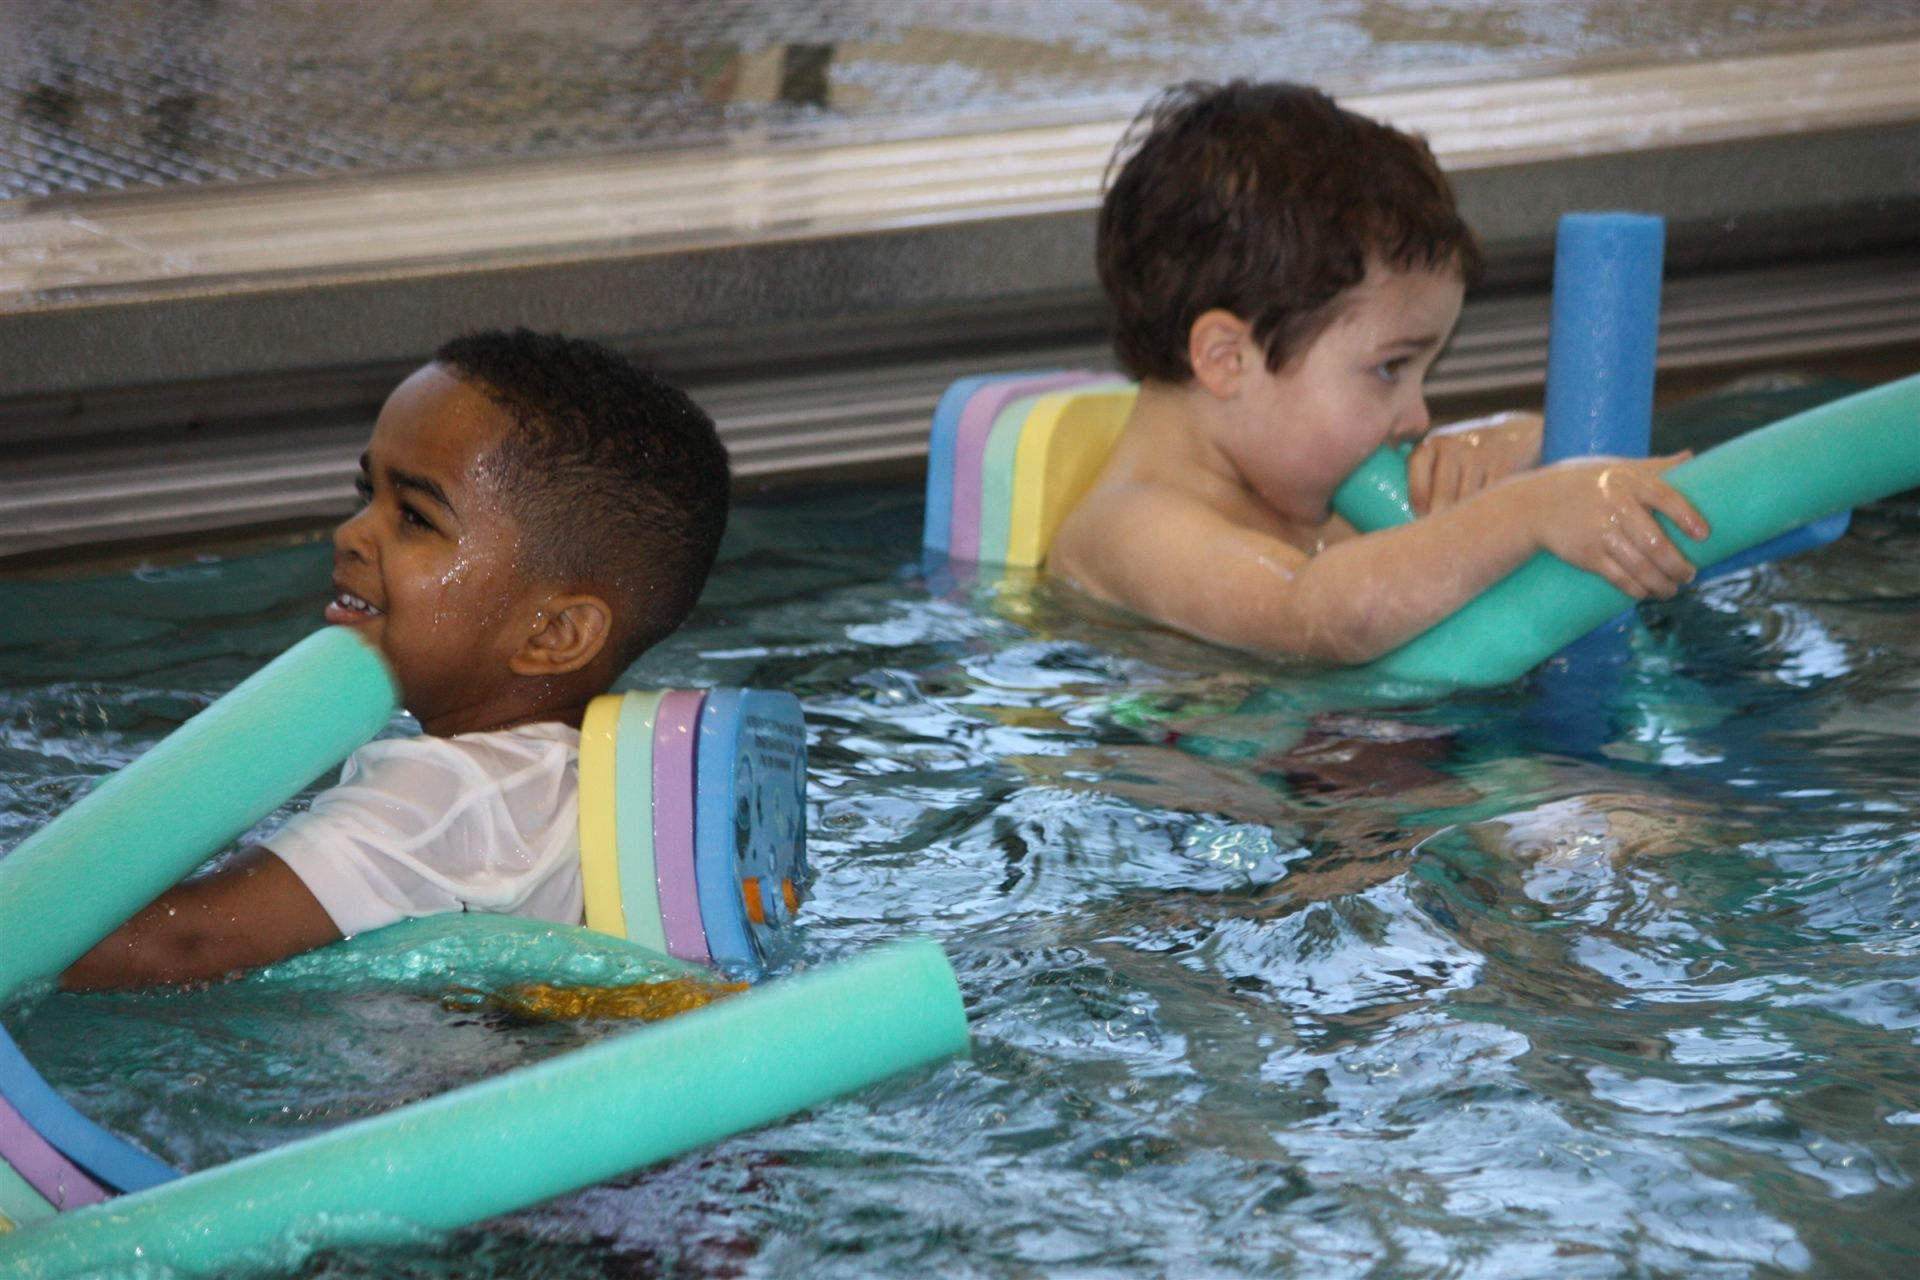 Elementary school students take swim classes in Hamden Hall country day school's pool